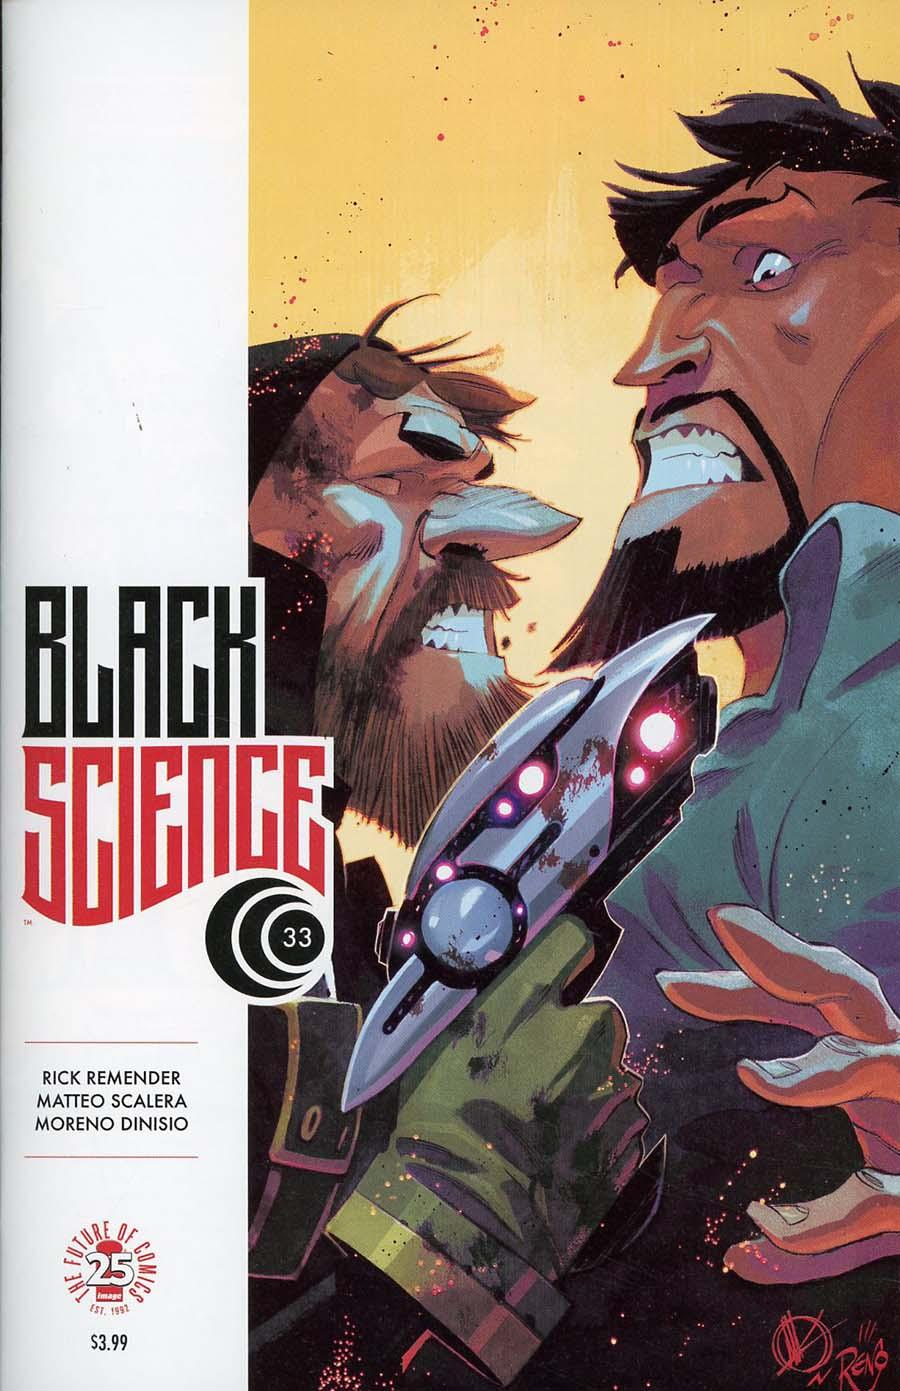 Black Science Vol. 1 #33